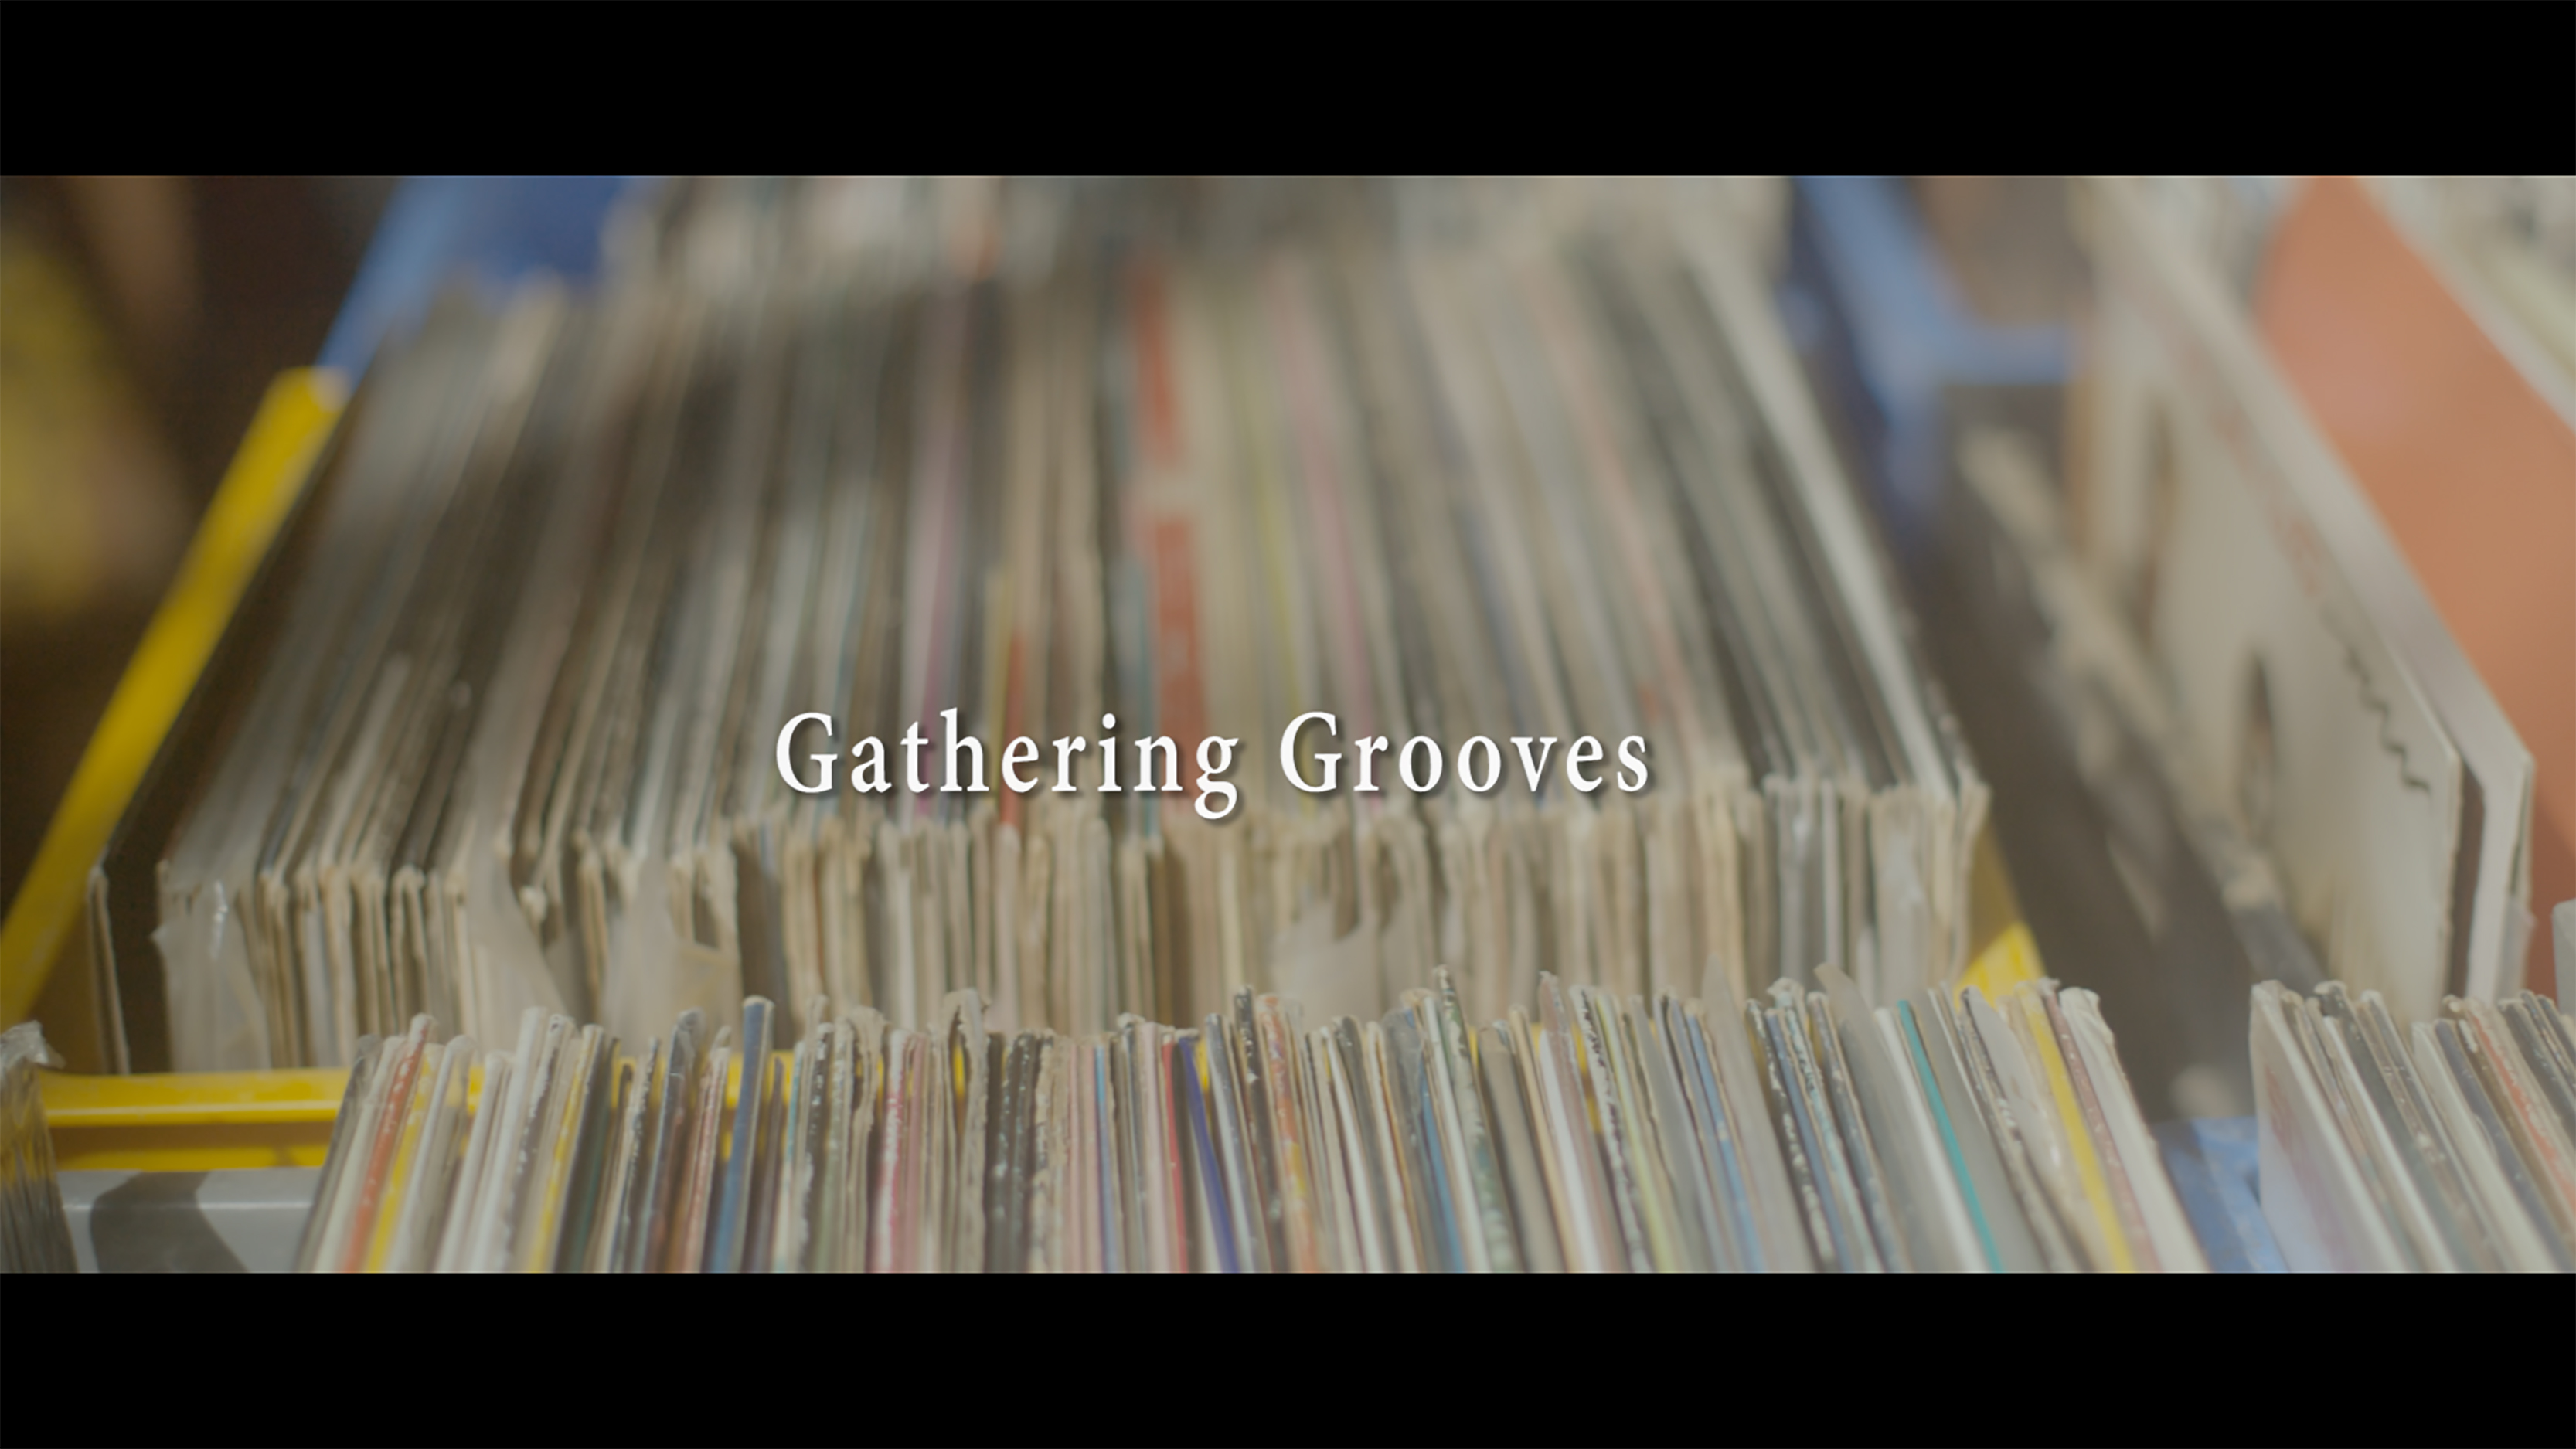 Gathering Grooves